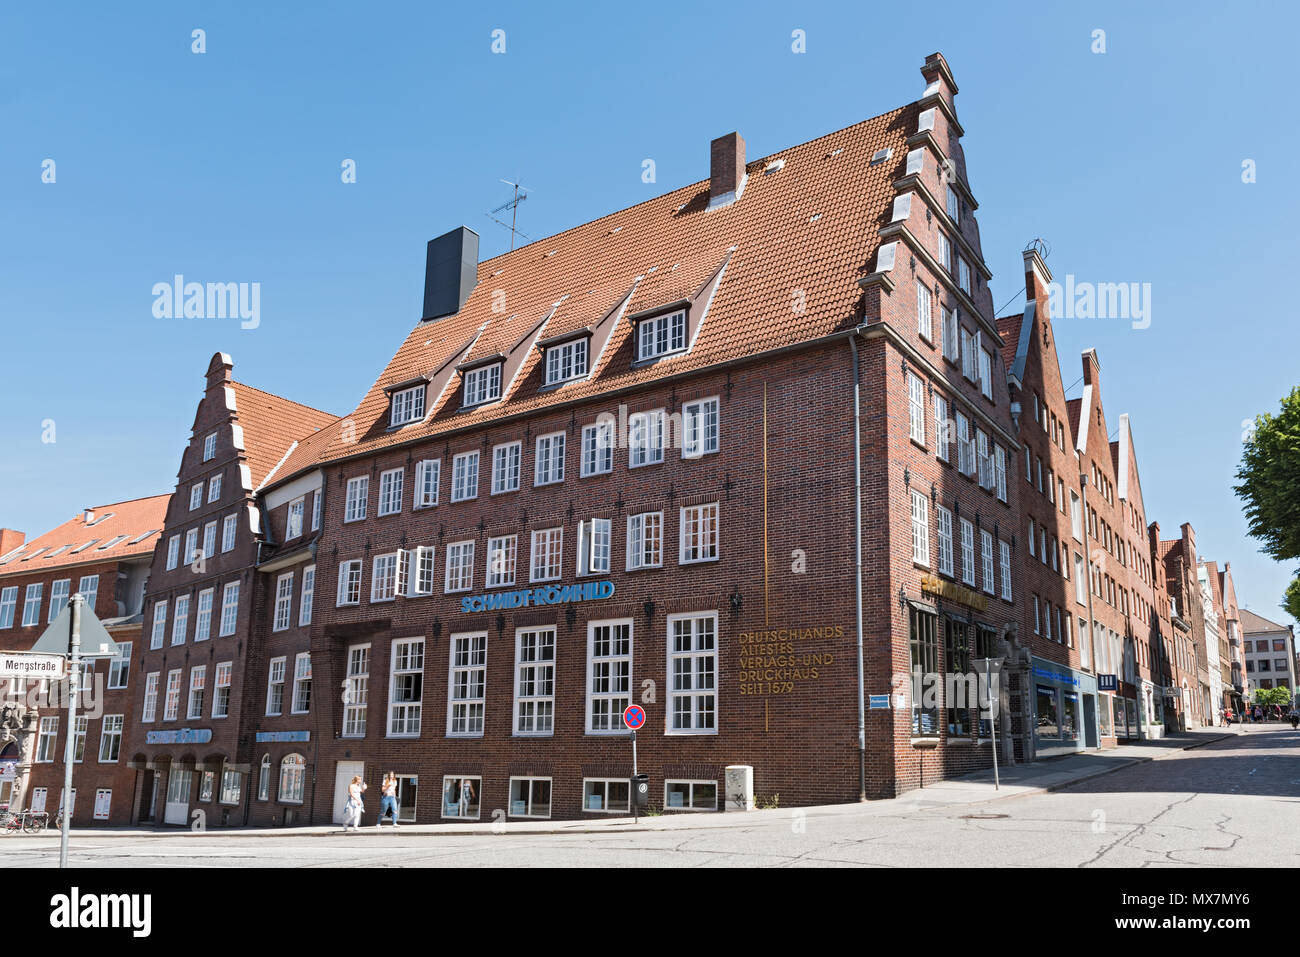 The oldest printing and publishing house in lubeck, germany - Stock Image